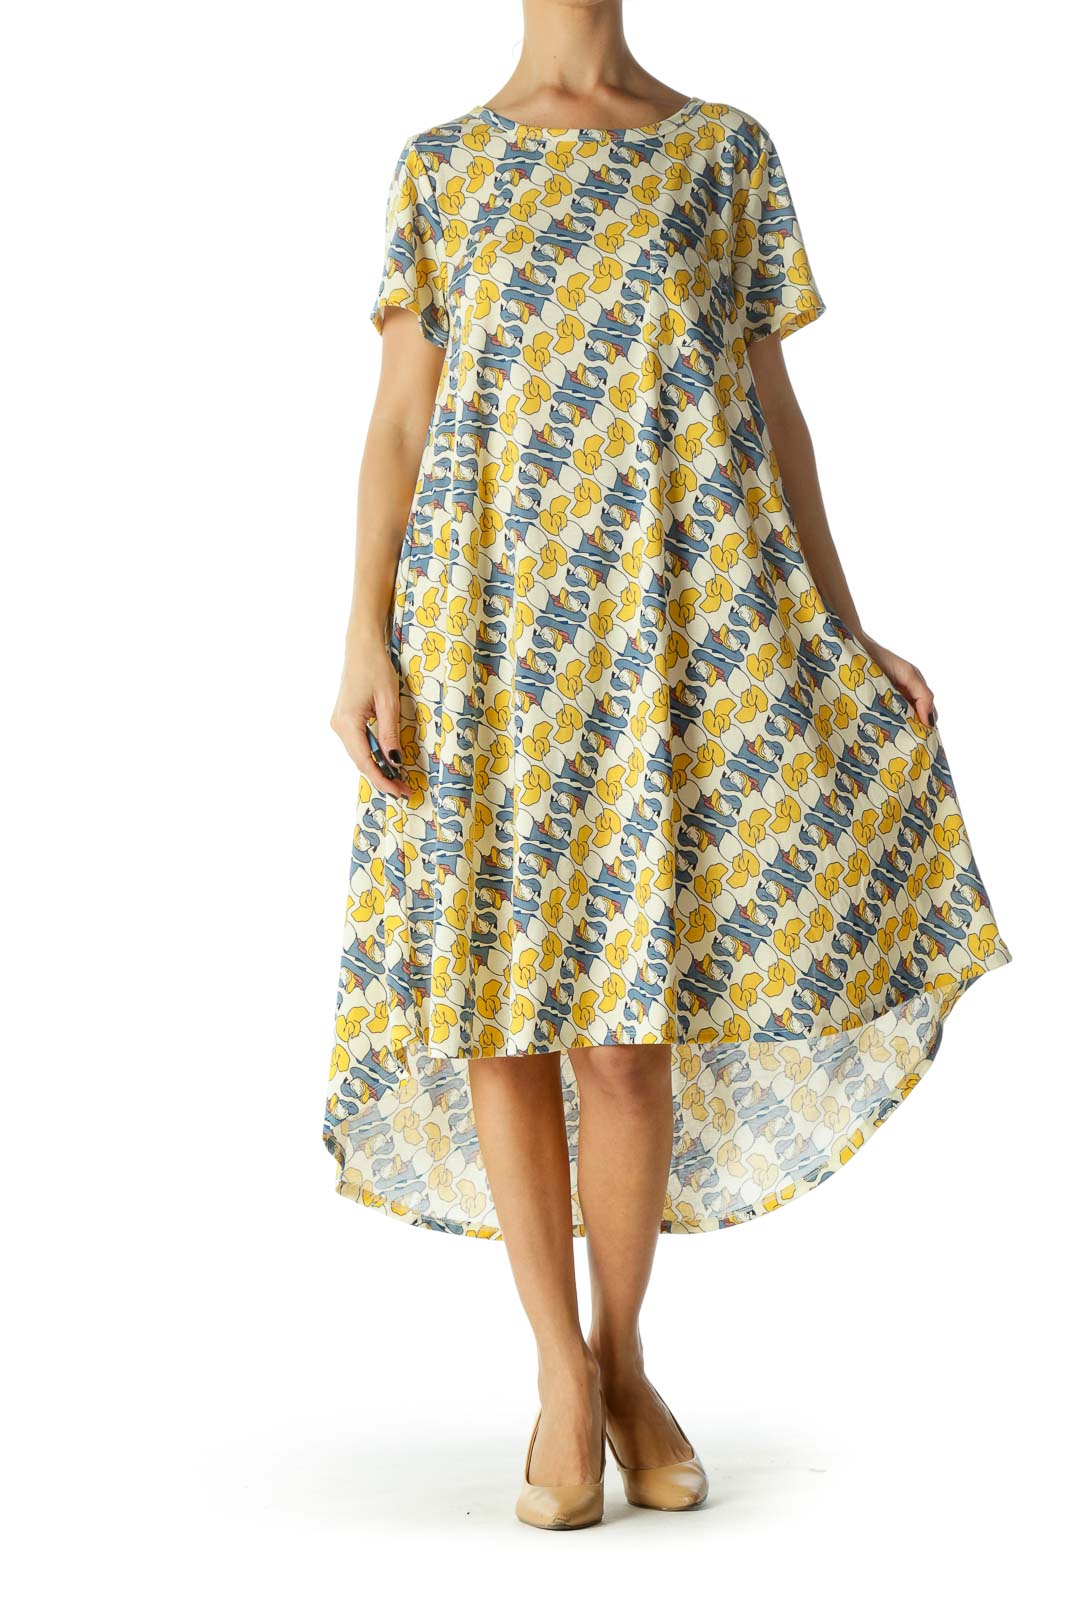 Yellow and Blue Donald Duck Print Short Sleeve Shirt Dress